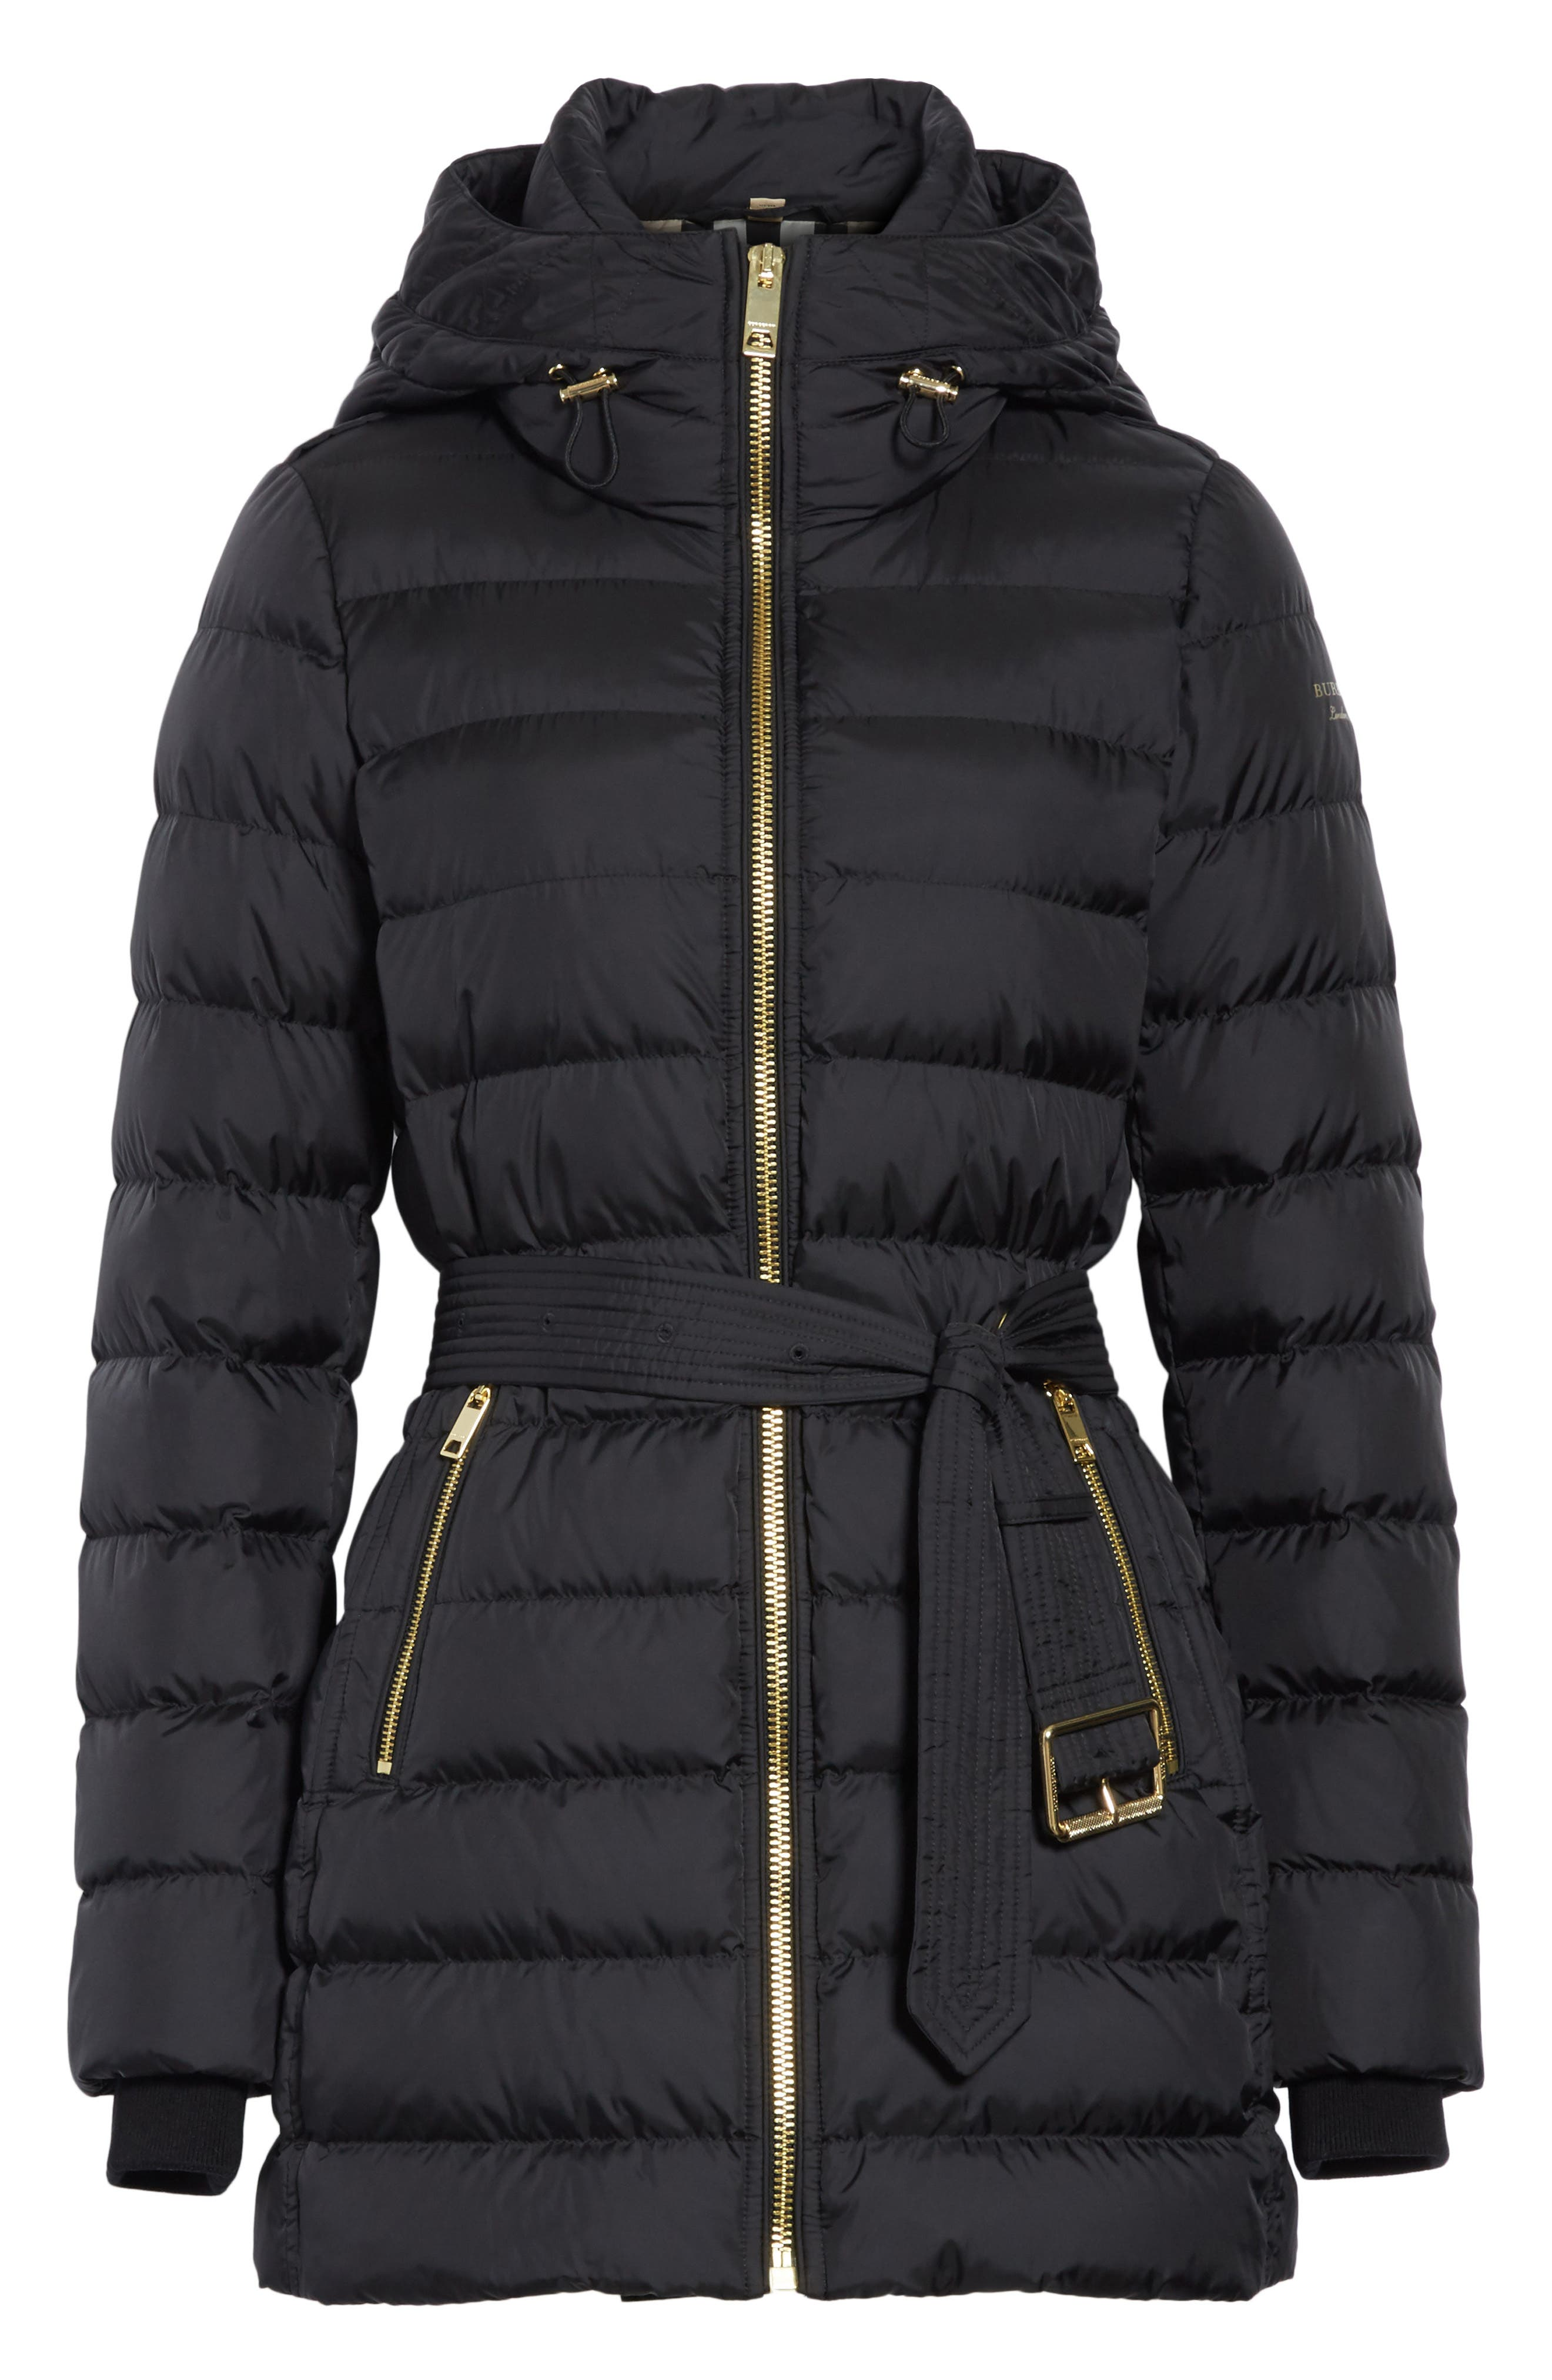 Limefield Hooded Puffer Coat,                             Alternate thumbnail 5, color,                             001